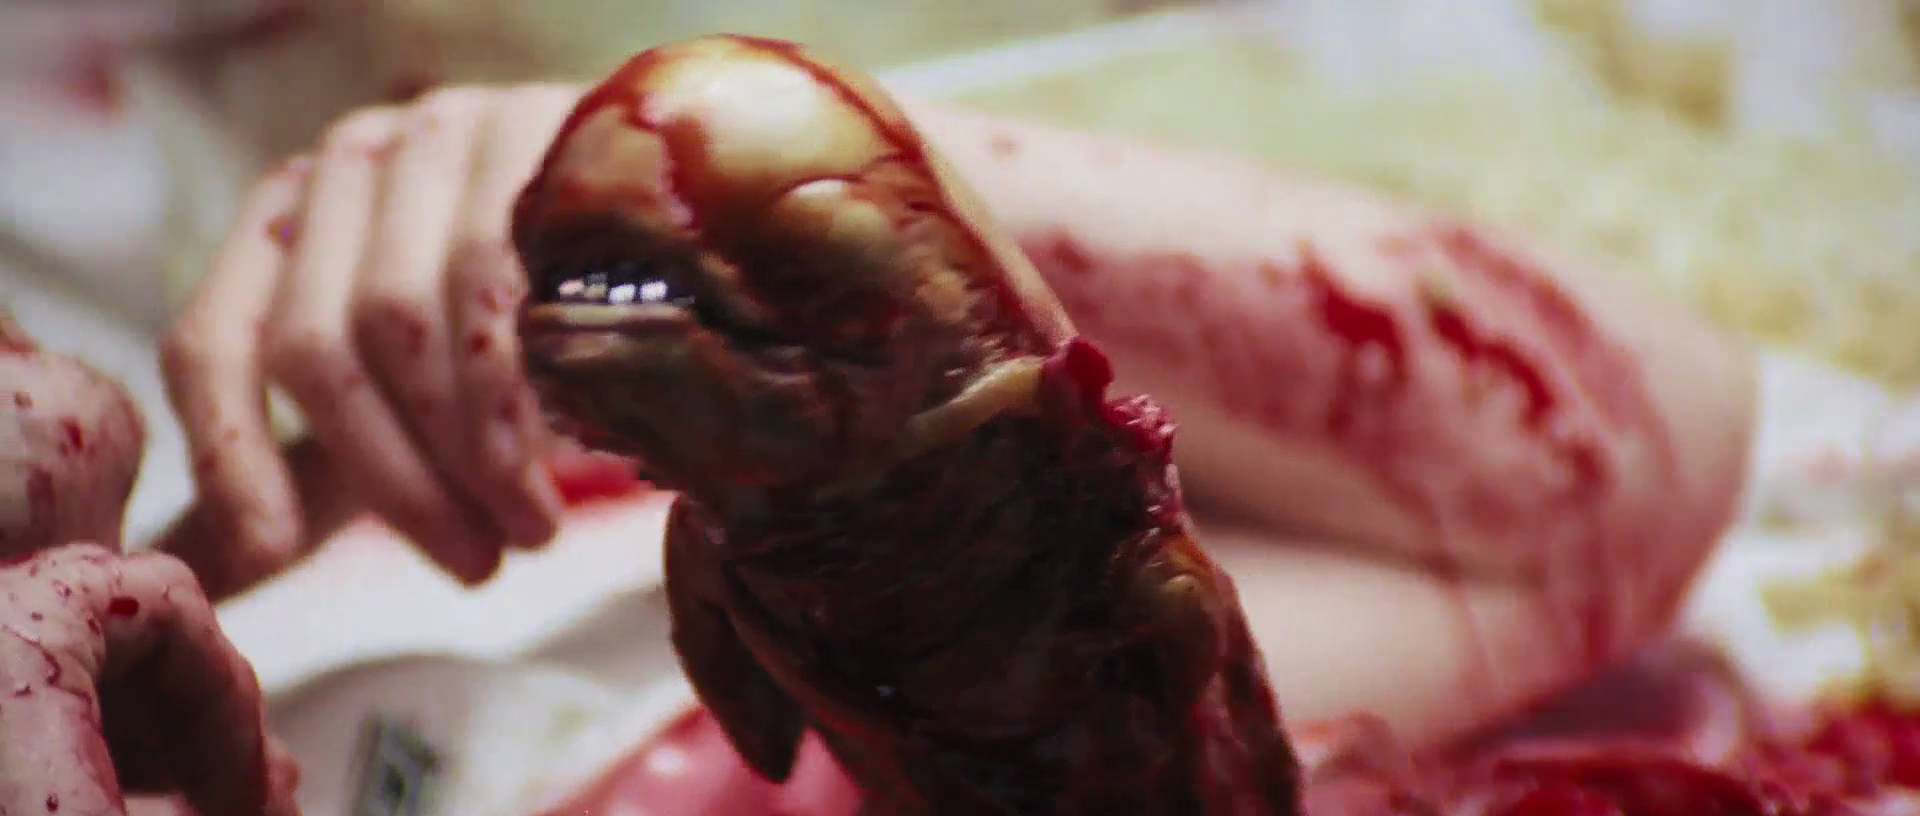 Image The Alien As Chestburster Png Xenopedia Fandom